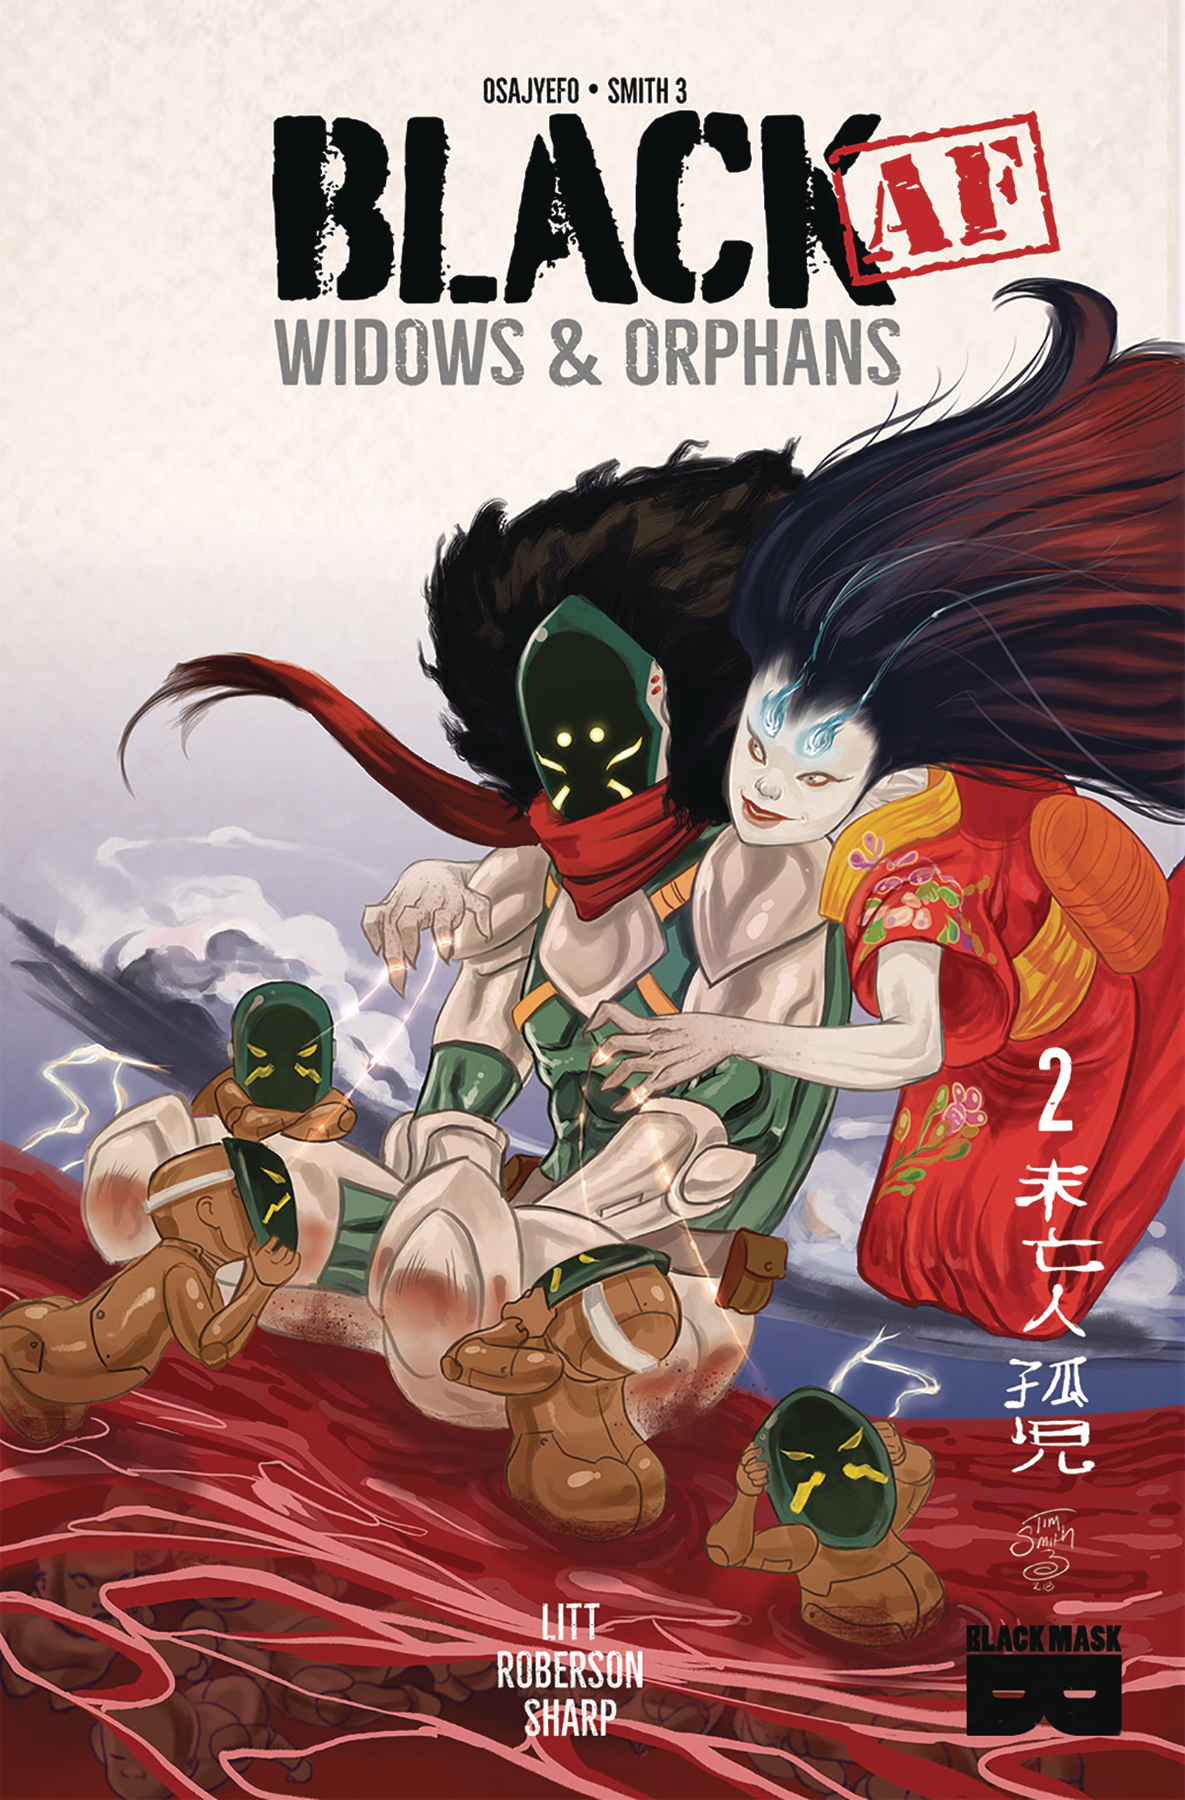 BLACK AF WIDOWS & ORPHANS #2 (MR)